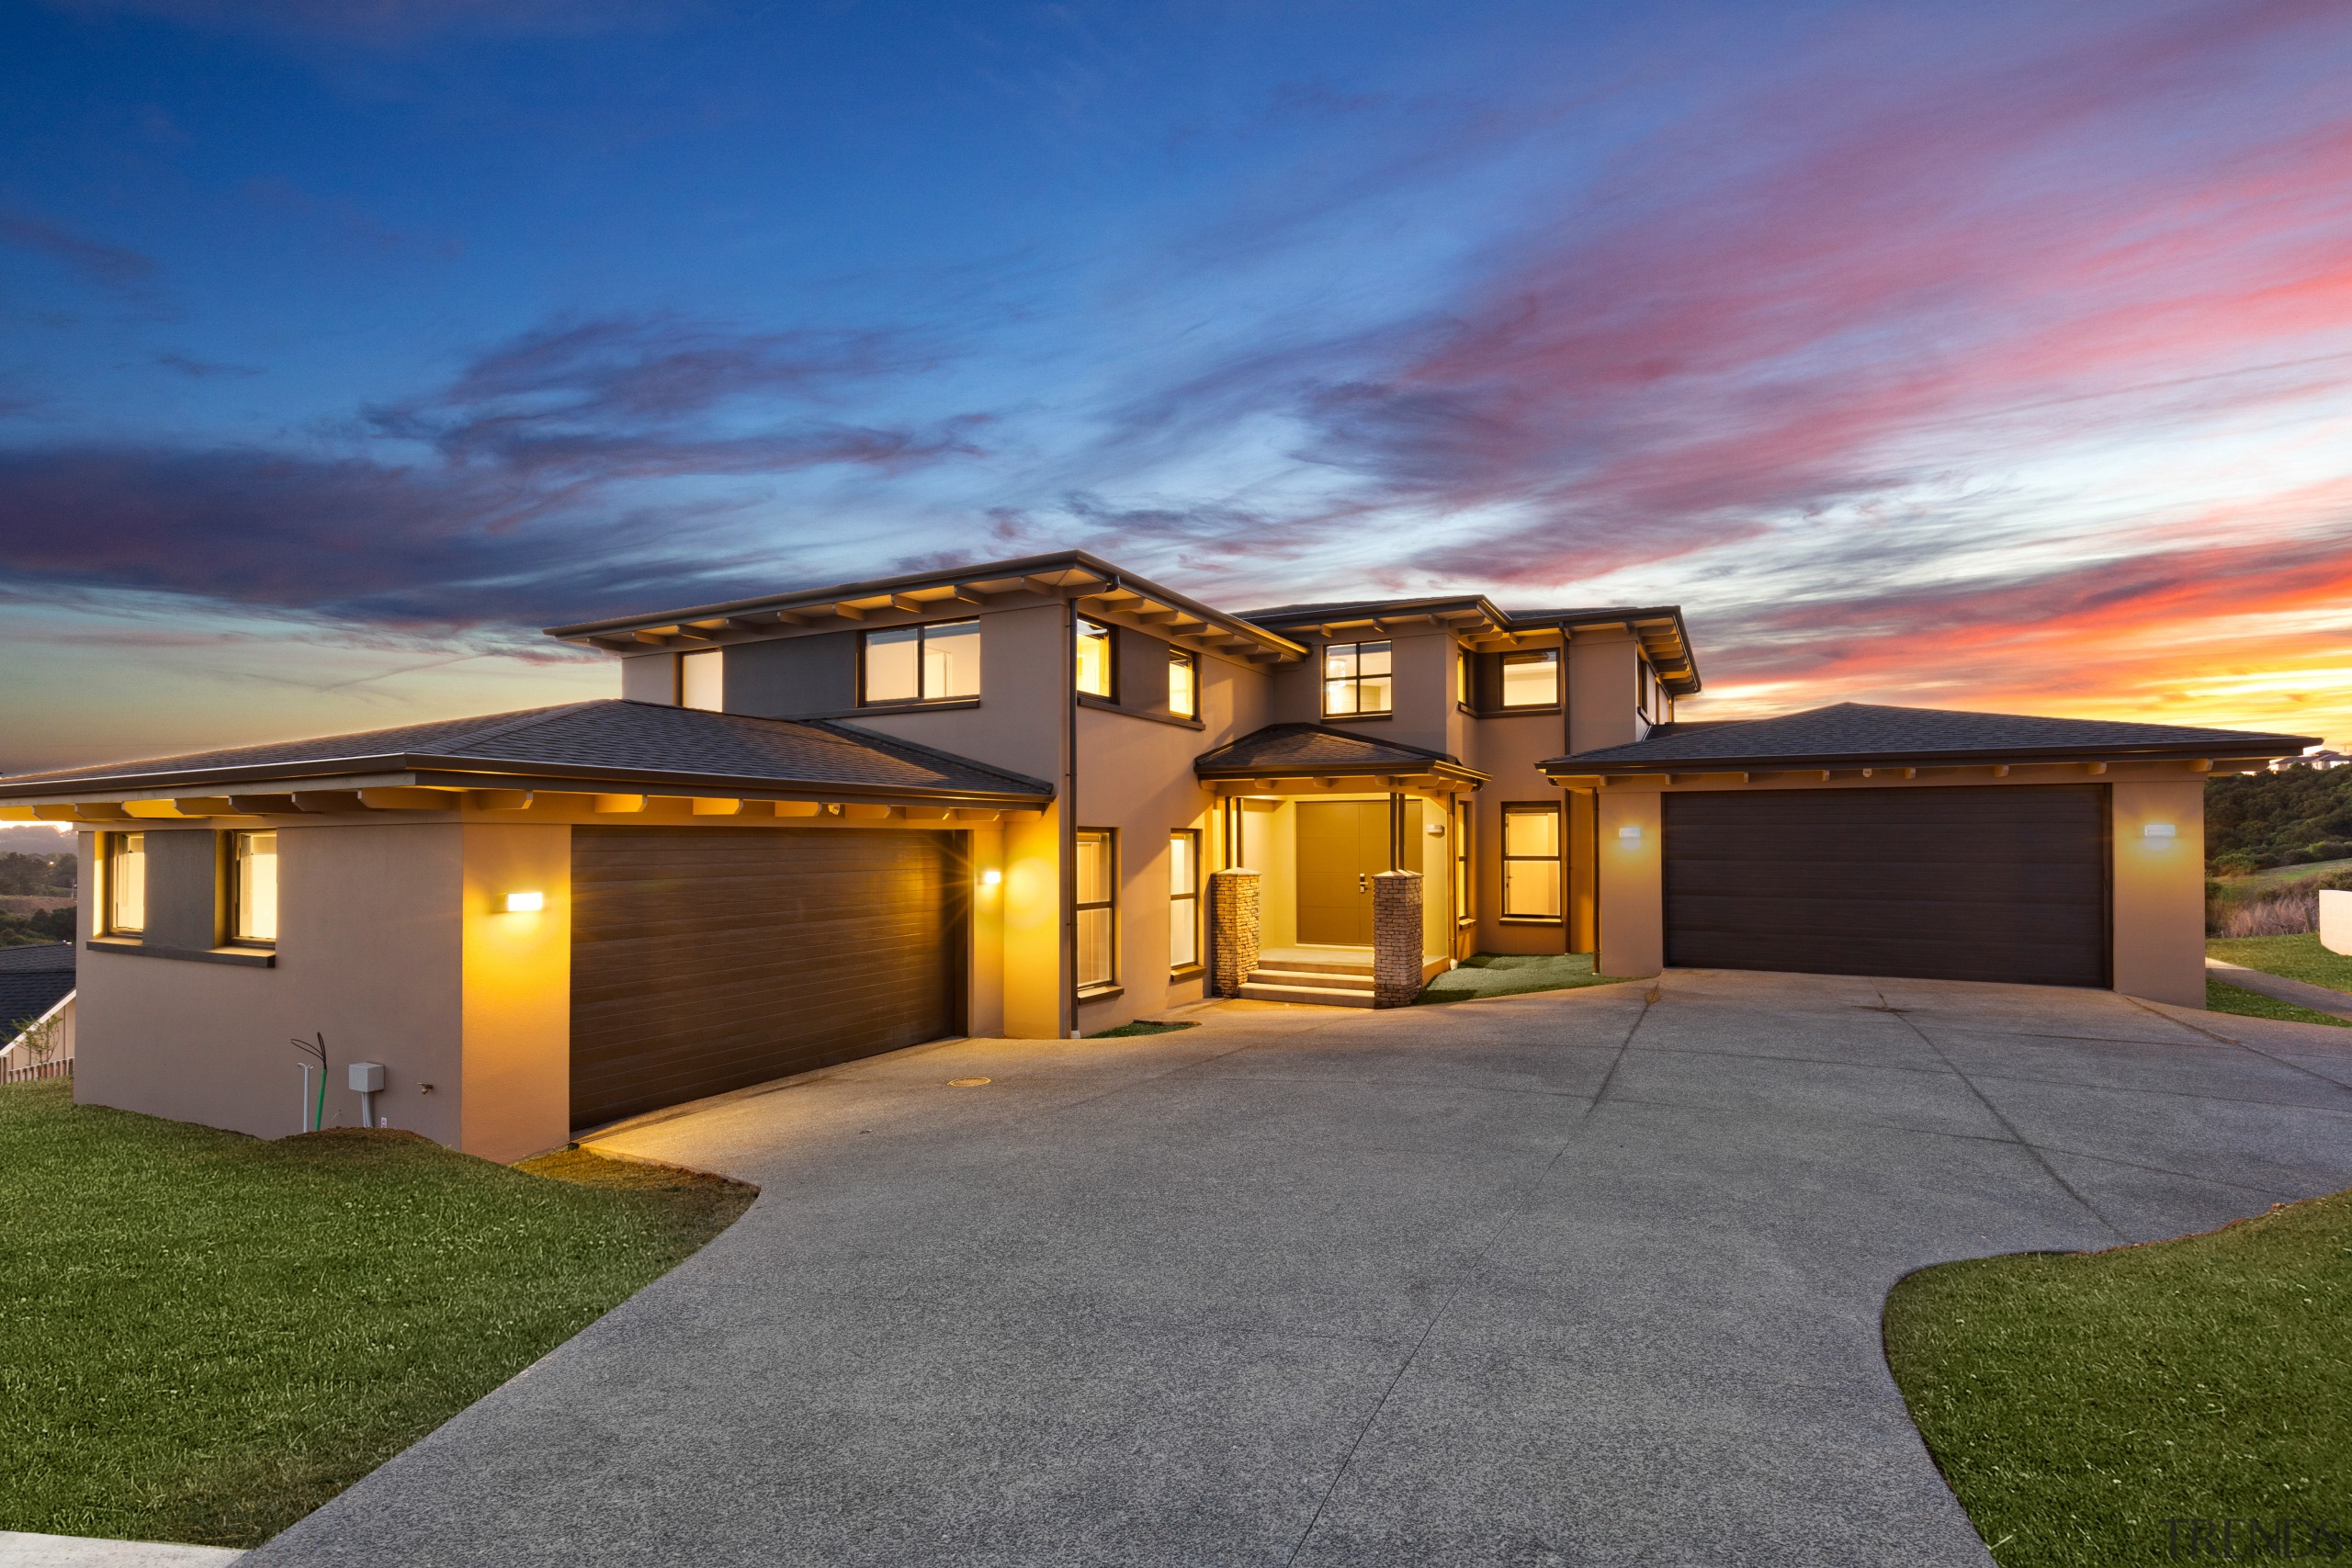 Two levels at entry, this generous-sized house by architecture, backyard, building, concrete, design, door, driveway, estate, facade, grass, home, house, interior design, land lot, landscape, landscaping, lighting, mansion, property, real estate, residential area, roof, sky, suburb, gray